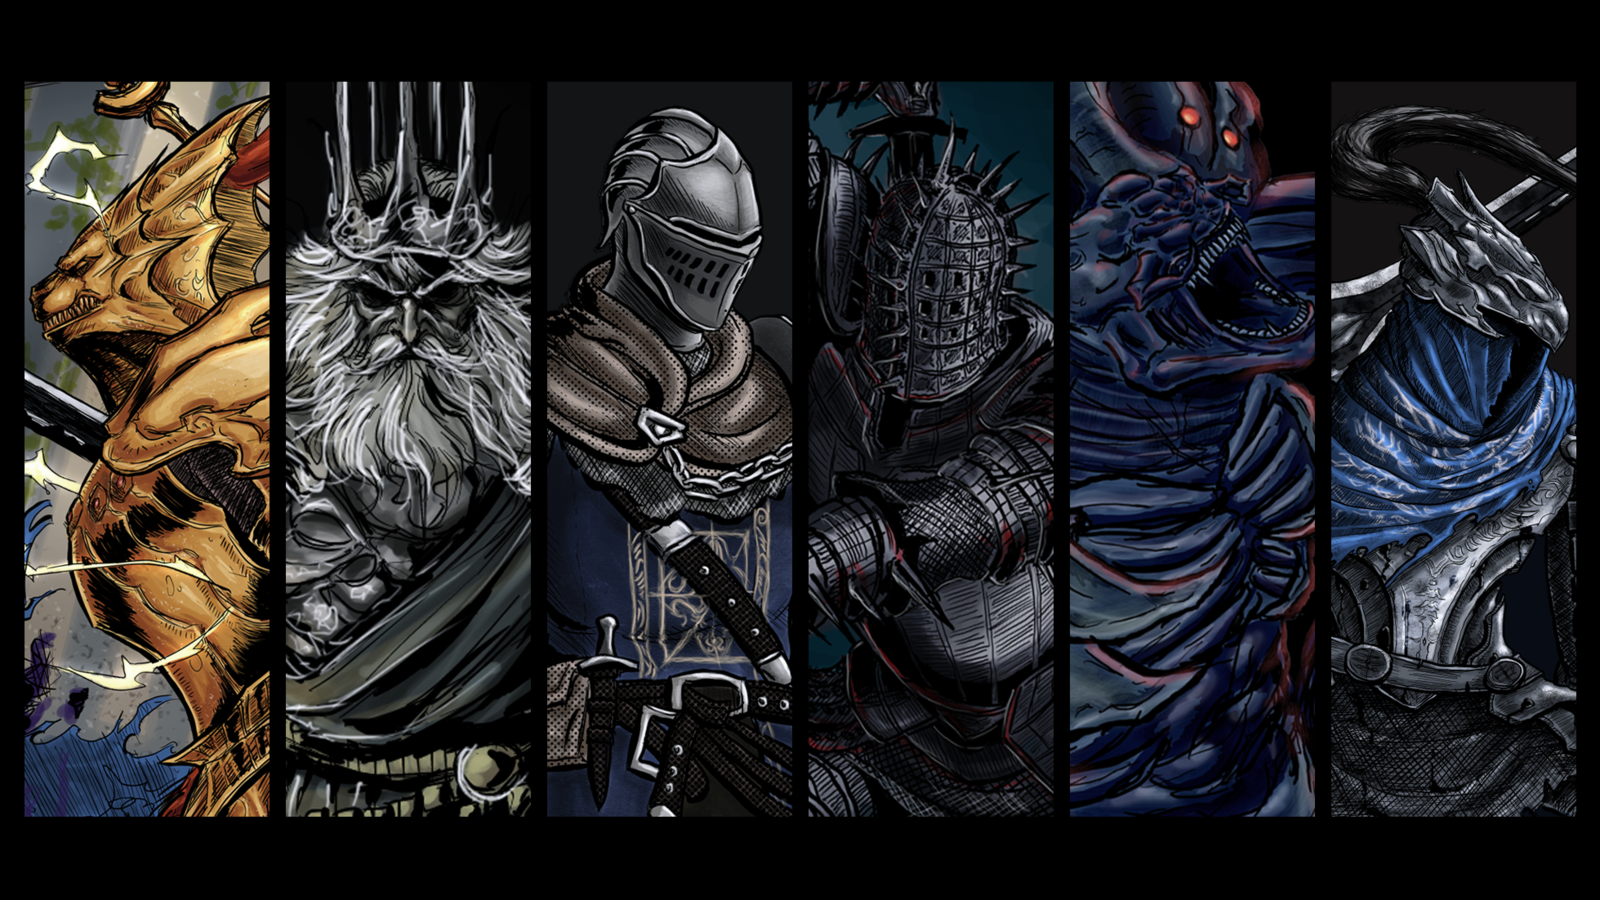 Free Download Dark Souls Bosses Wallpaper Hd Dark Souls Wallpaper